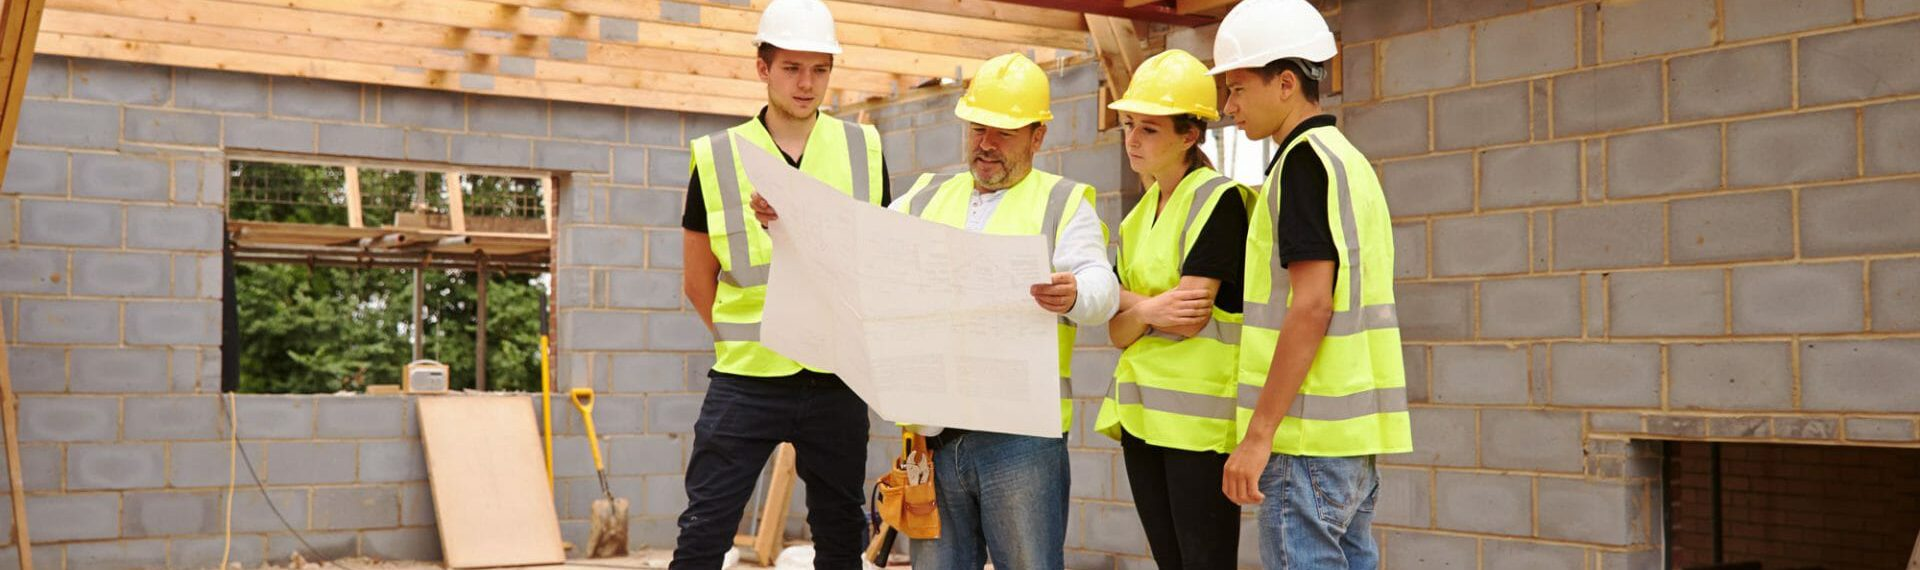 group of construction workers on site